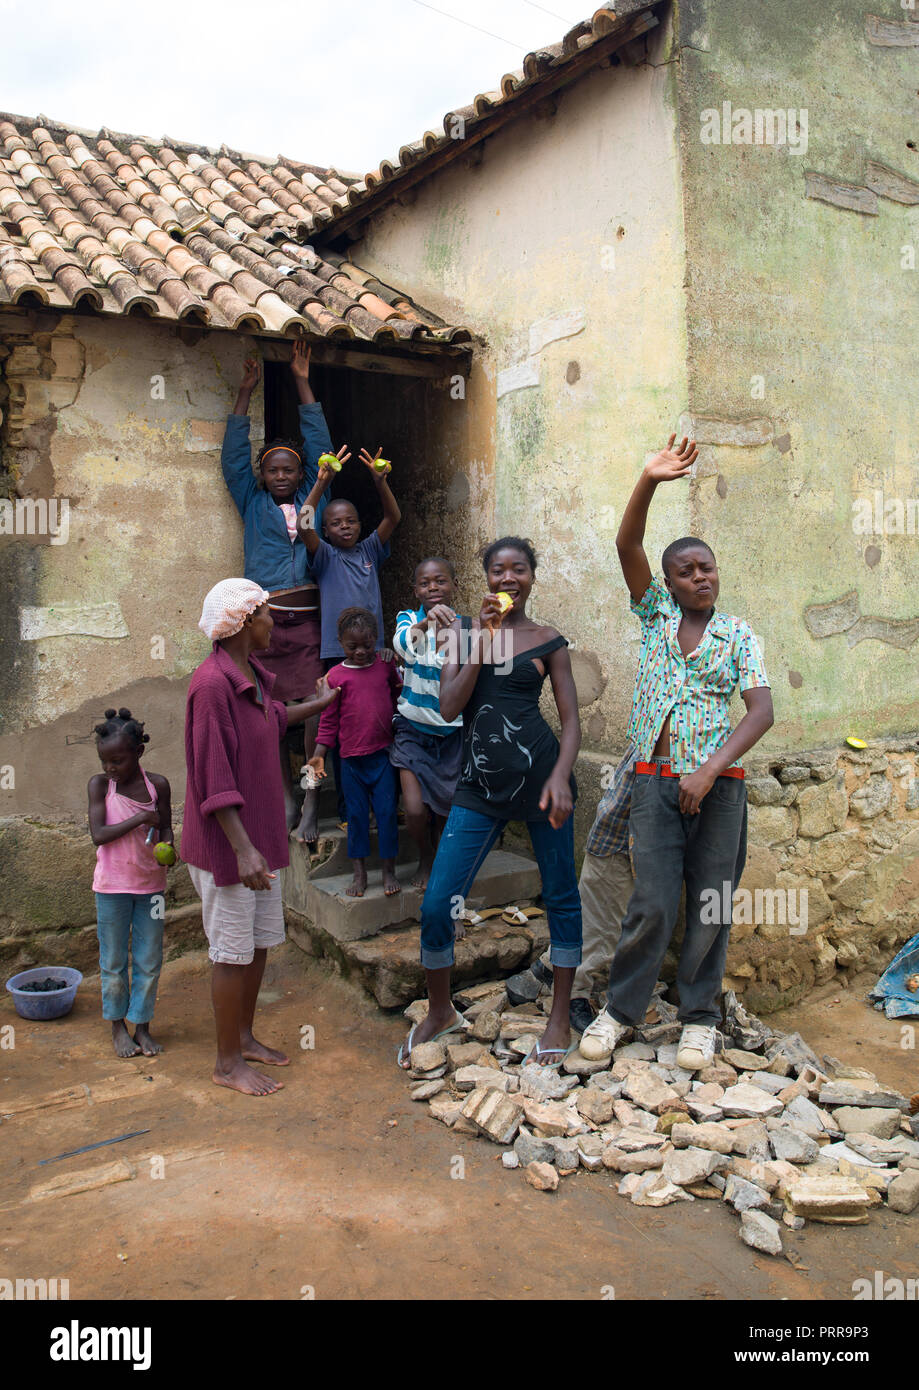 Angolan boys and girls in a village with mangoes, Huila Province, Caconda, Angola Stock Photo